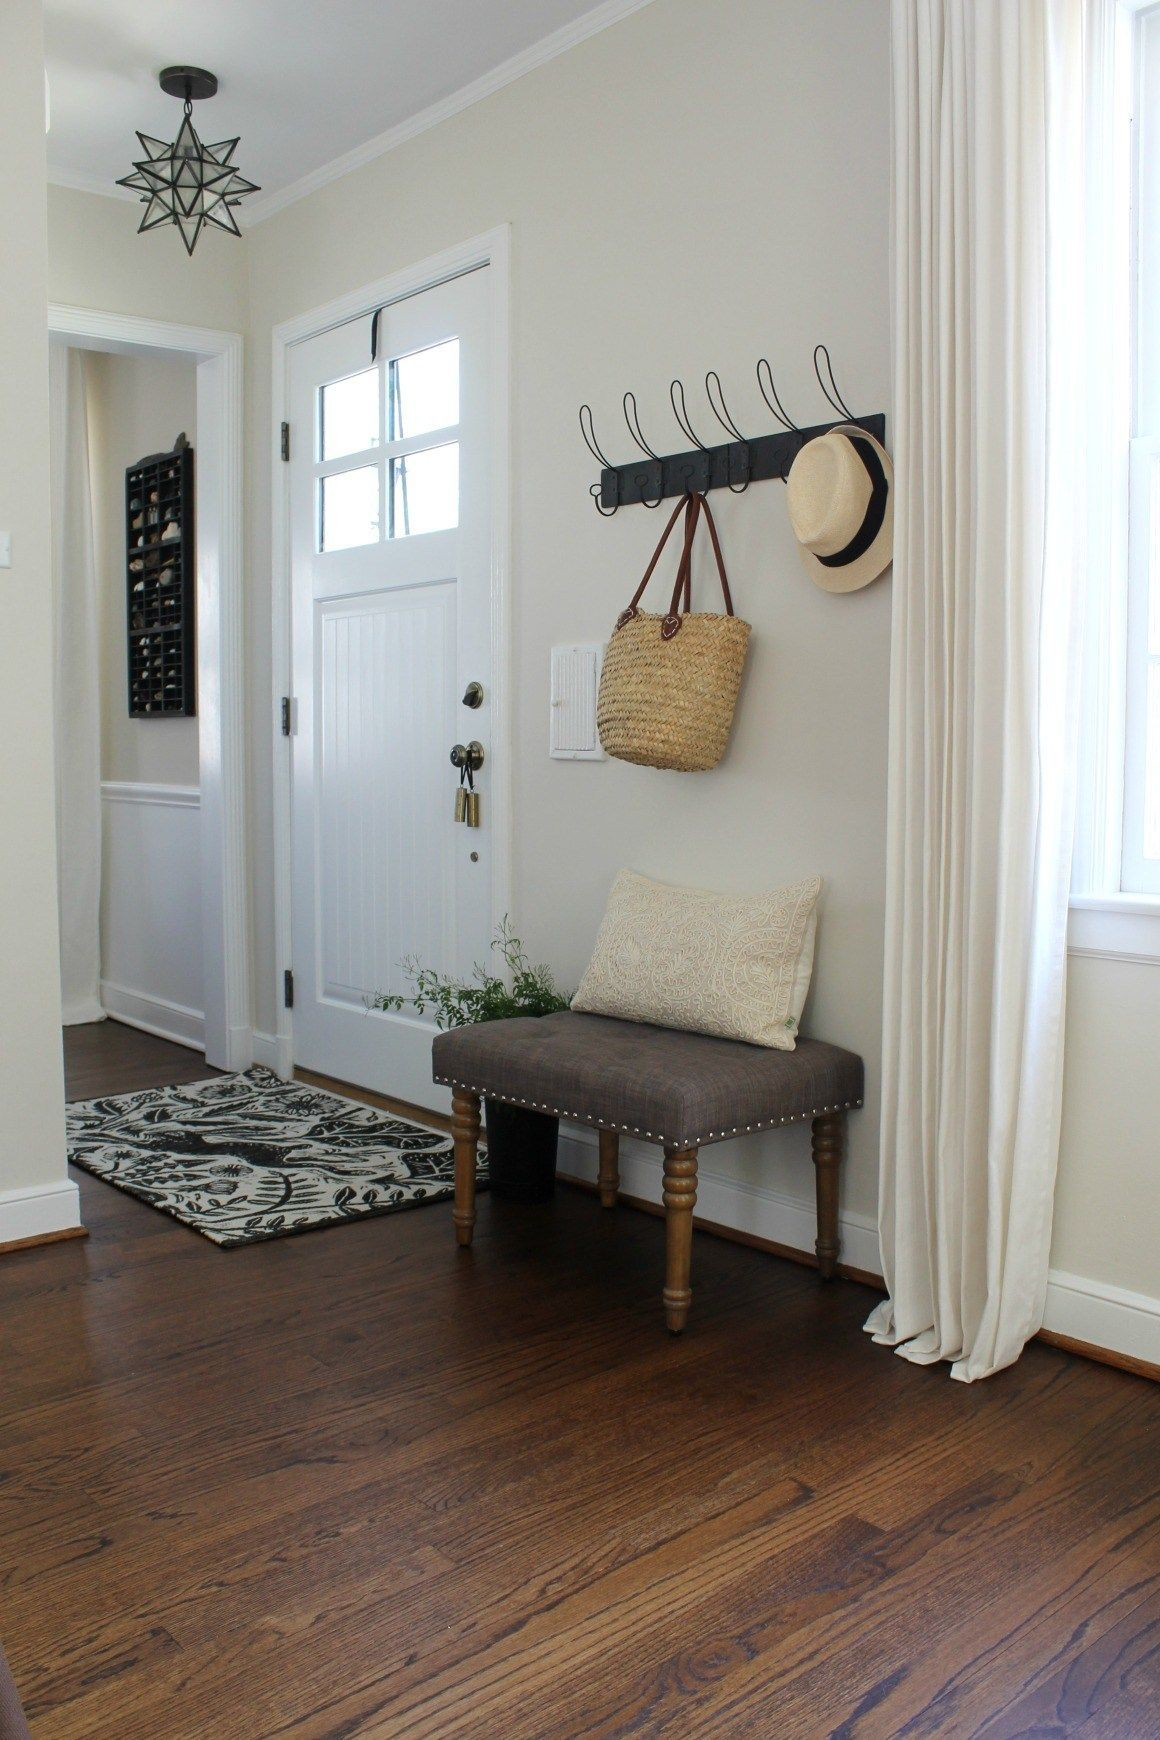 29 Best Entryway Ideas For Small Spaces Small Space Living Home Decor Living Room Designs Living room entryway ideas